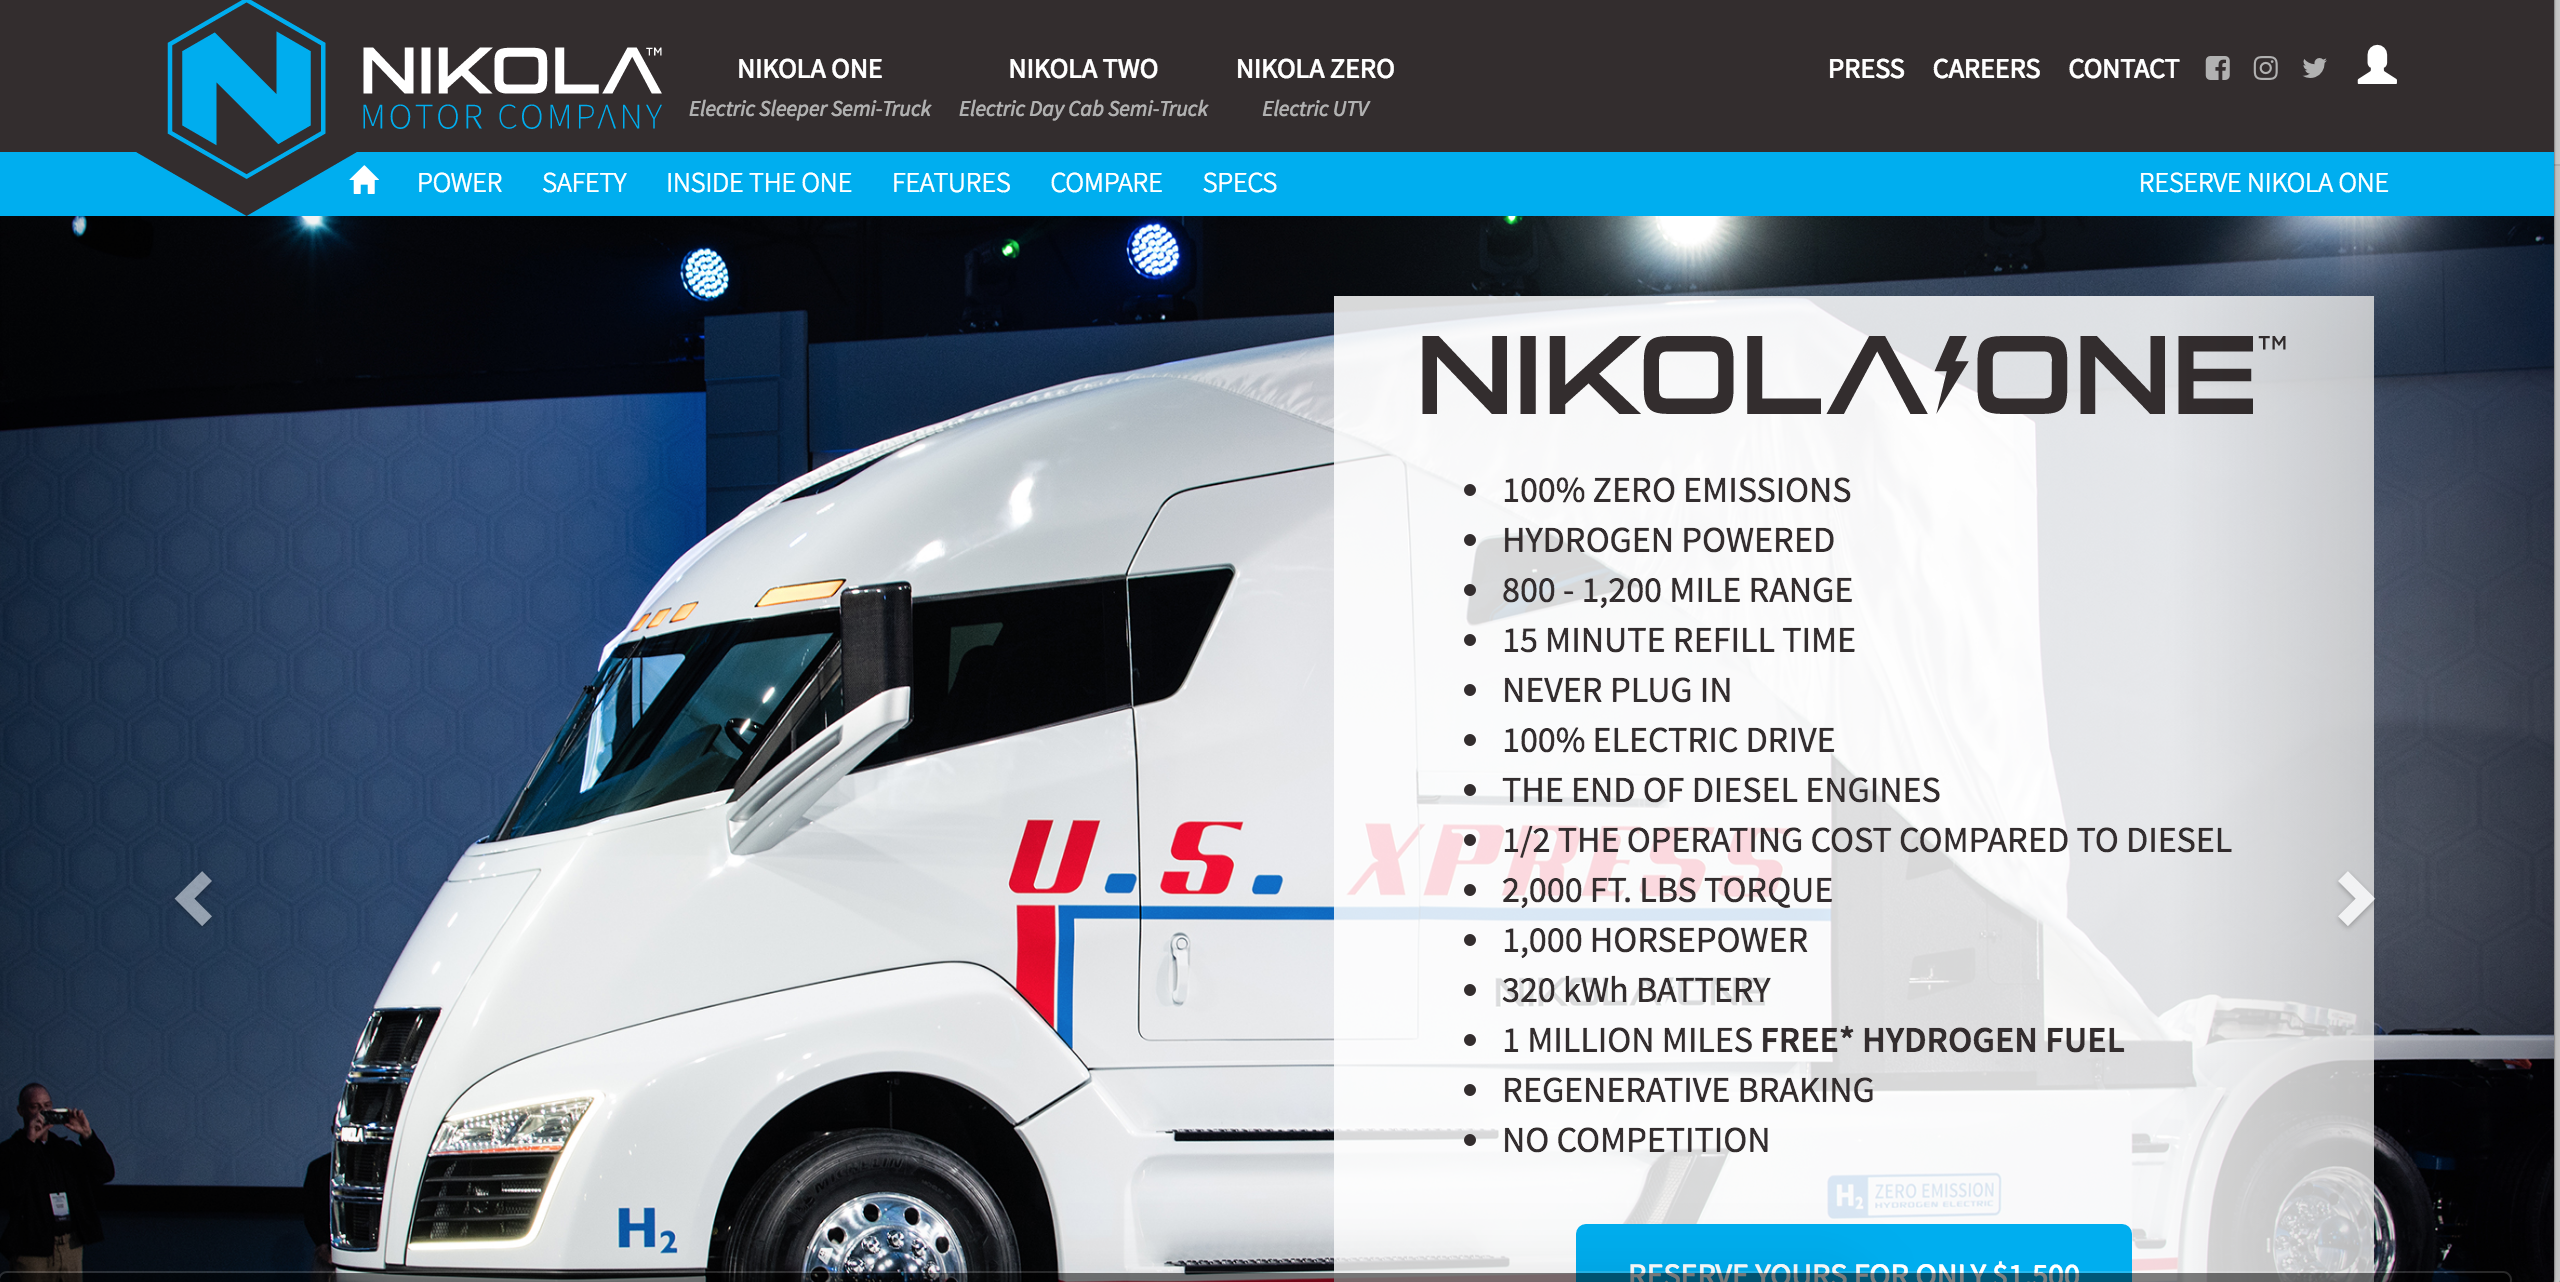 A Startup By The Name Of Nikola Motors Recently Launched Semi Truck Based On Hydrogen Fuel Cell Technology